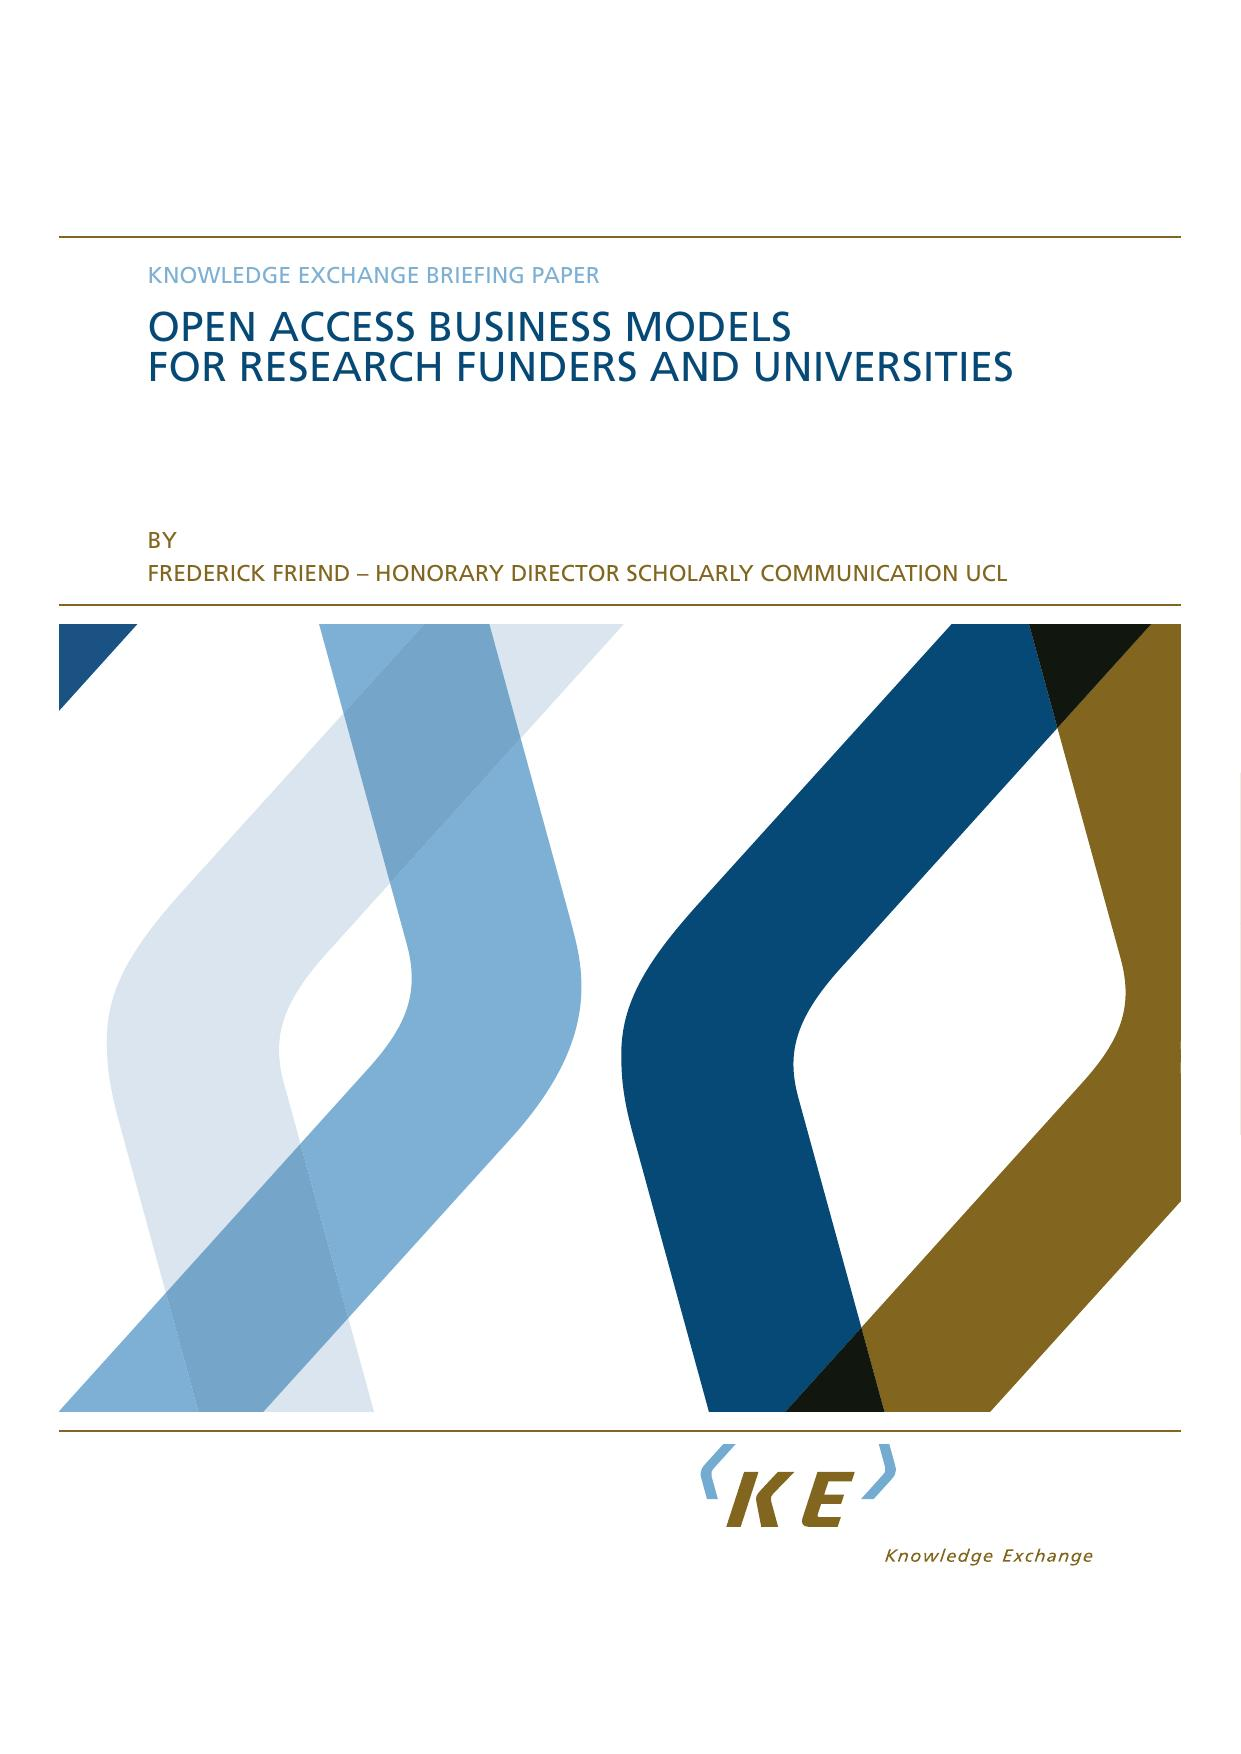 BUSINESS MODELS FOR RESEARCH FUNDERS AND UNIVERSITIES